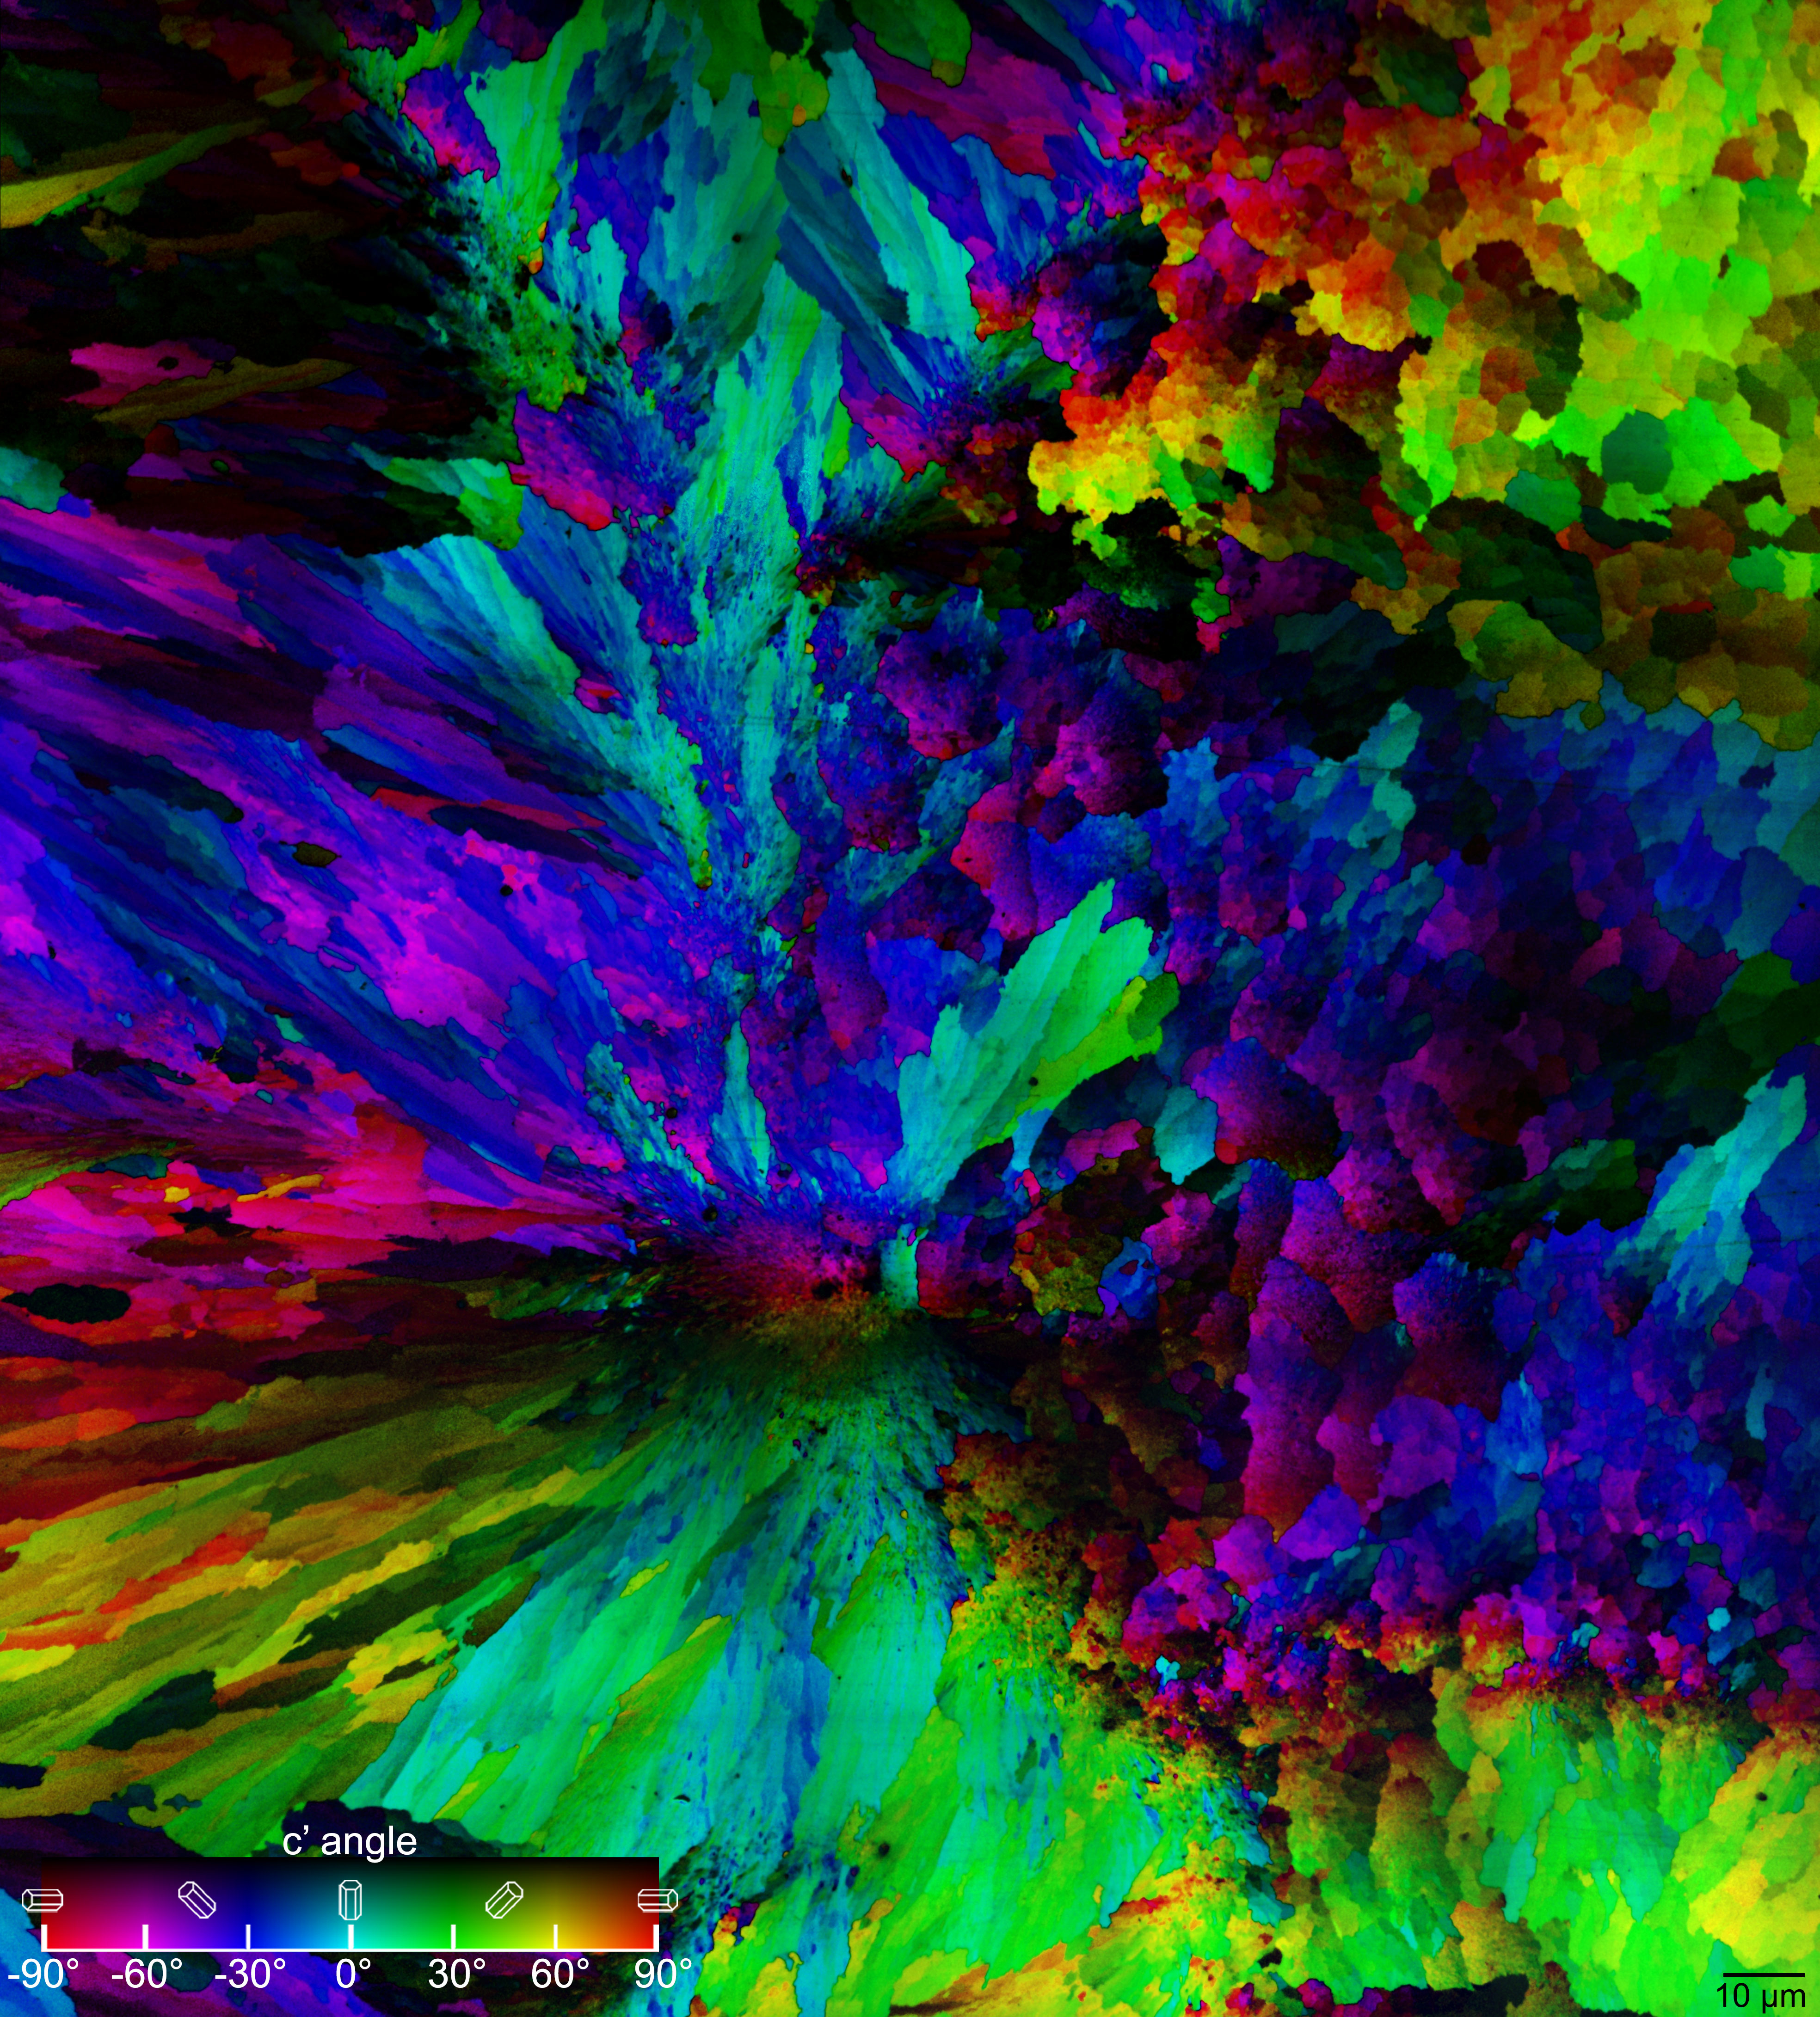 <b>Coral spherulites</b><br /> Crystal orientations in a coral skeleton, as measured and displayed in color by Polarization-dependent Imaging Contrast (PIC) mapping with 20-nm resolution.<br /> Data from Acta Biomaterialia 2021, DOI: 10.1016/j.actbio.2020.06.027